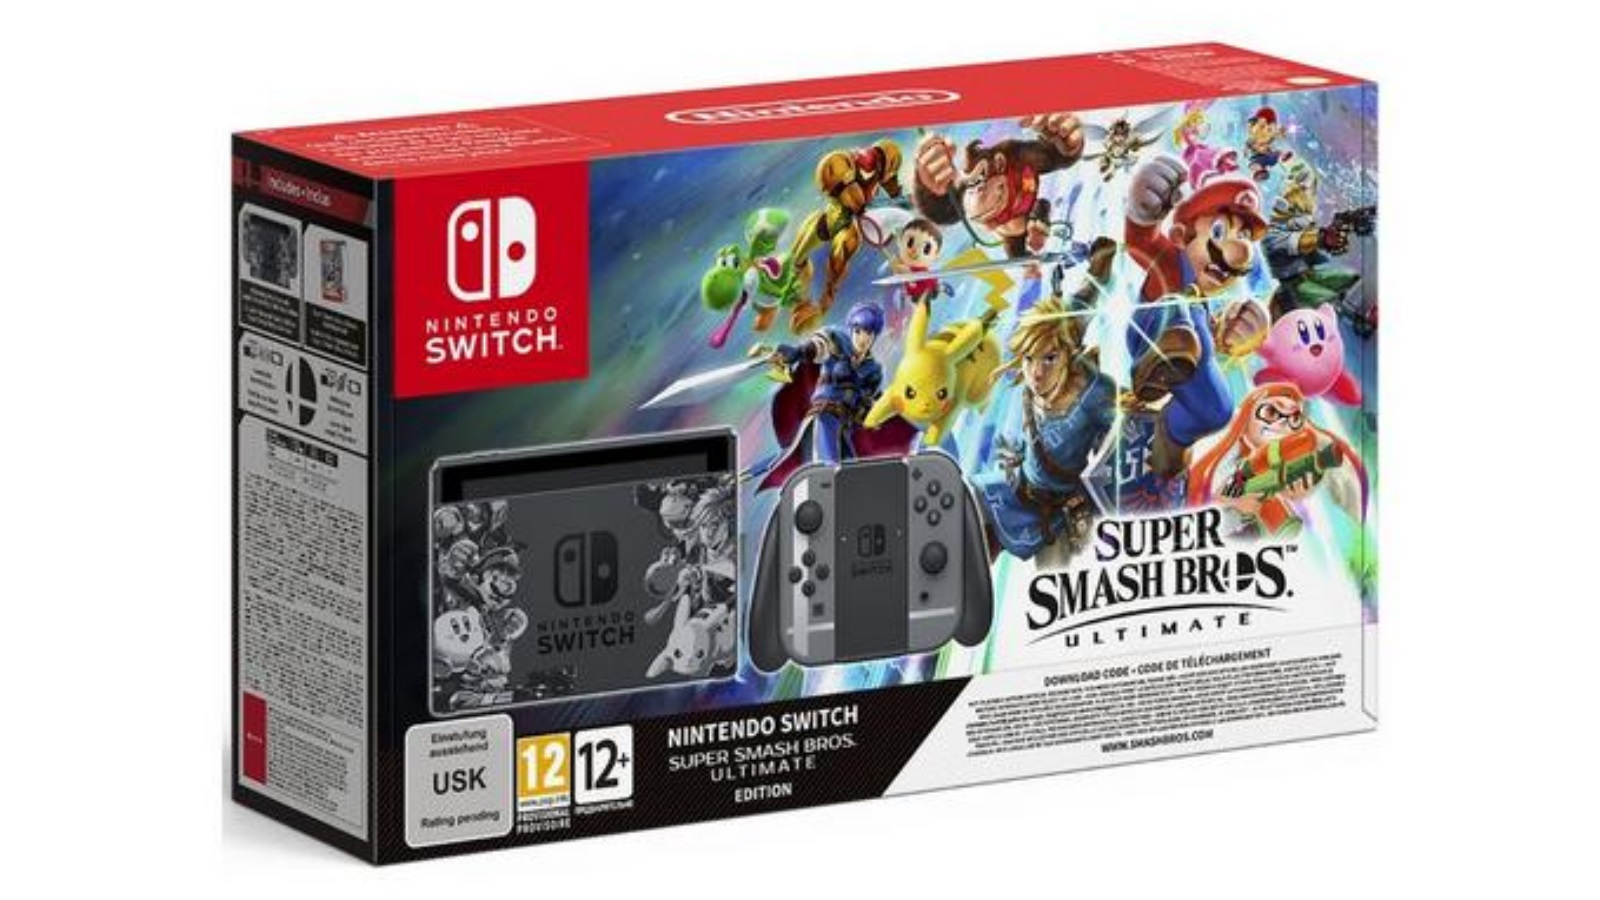 Cyber Monday Nintendo Switch Deals Save 30 On The Super Smash Bros Bundle Den Of Geek